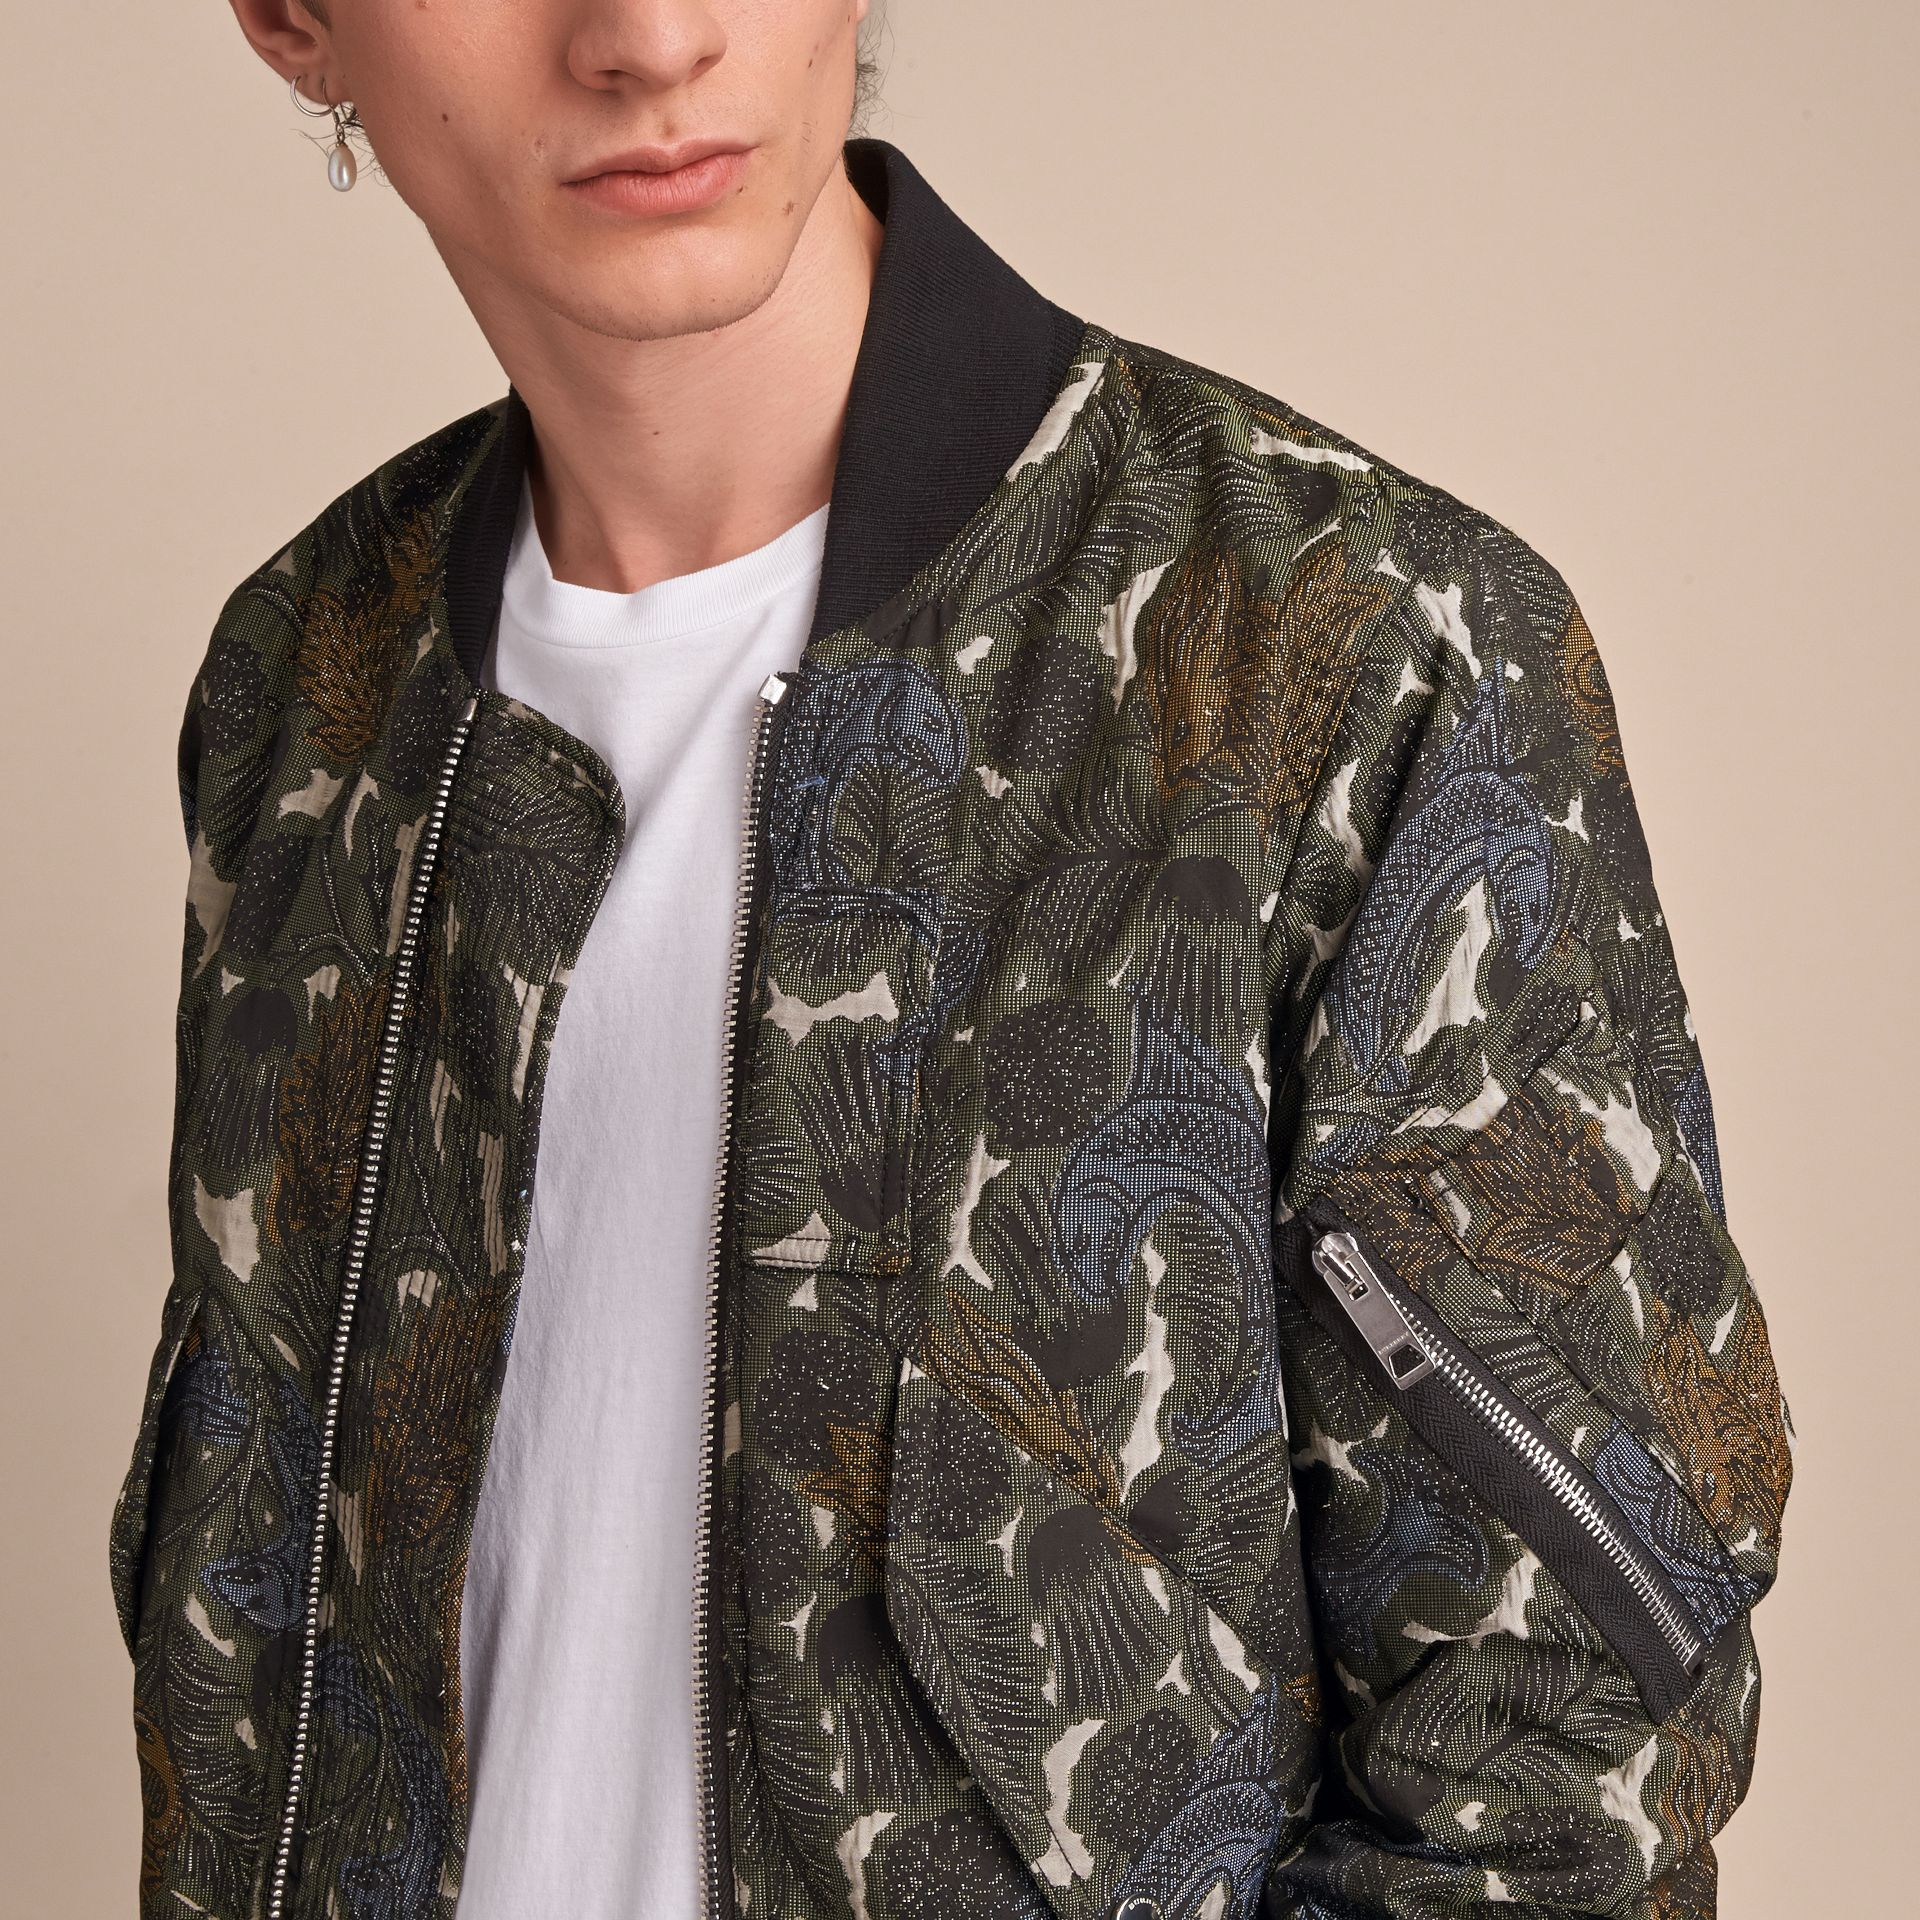 Beasts Print Lightweight Bomber Jacket in Sage Green - Men | Burberry - gallery image 5